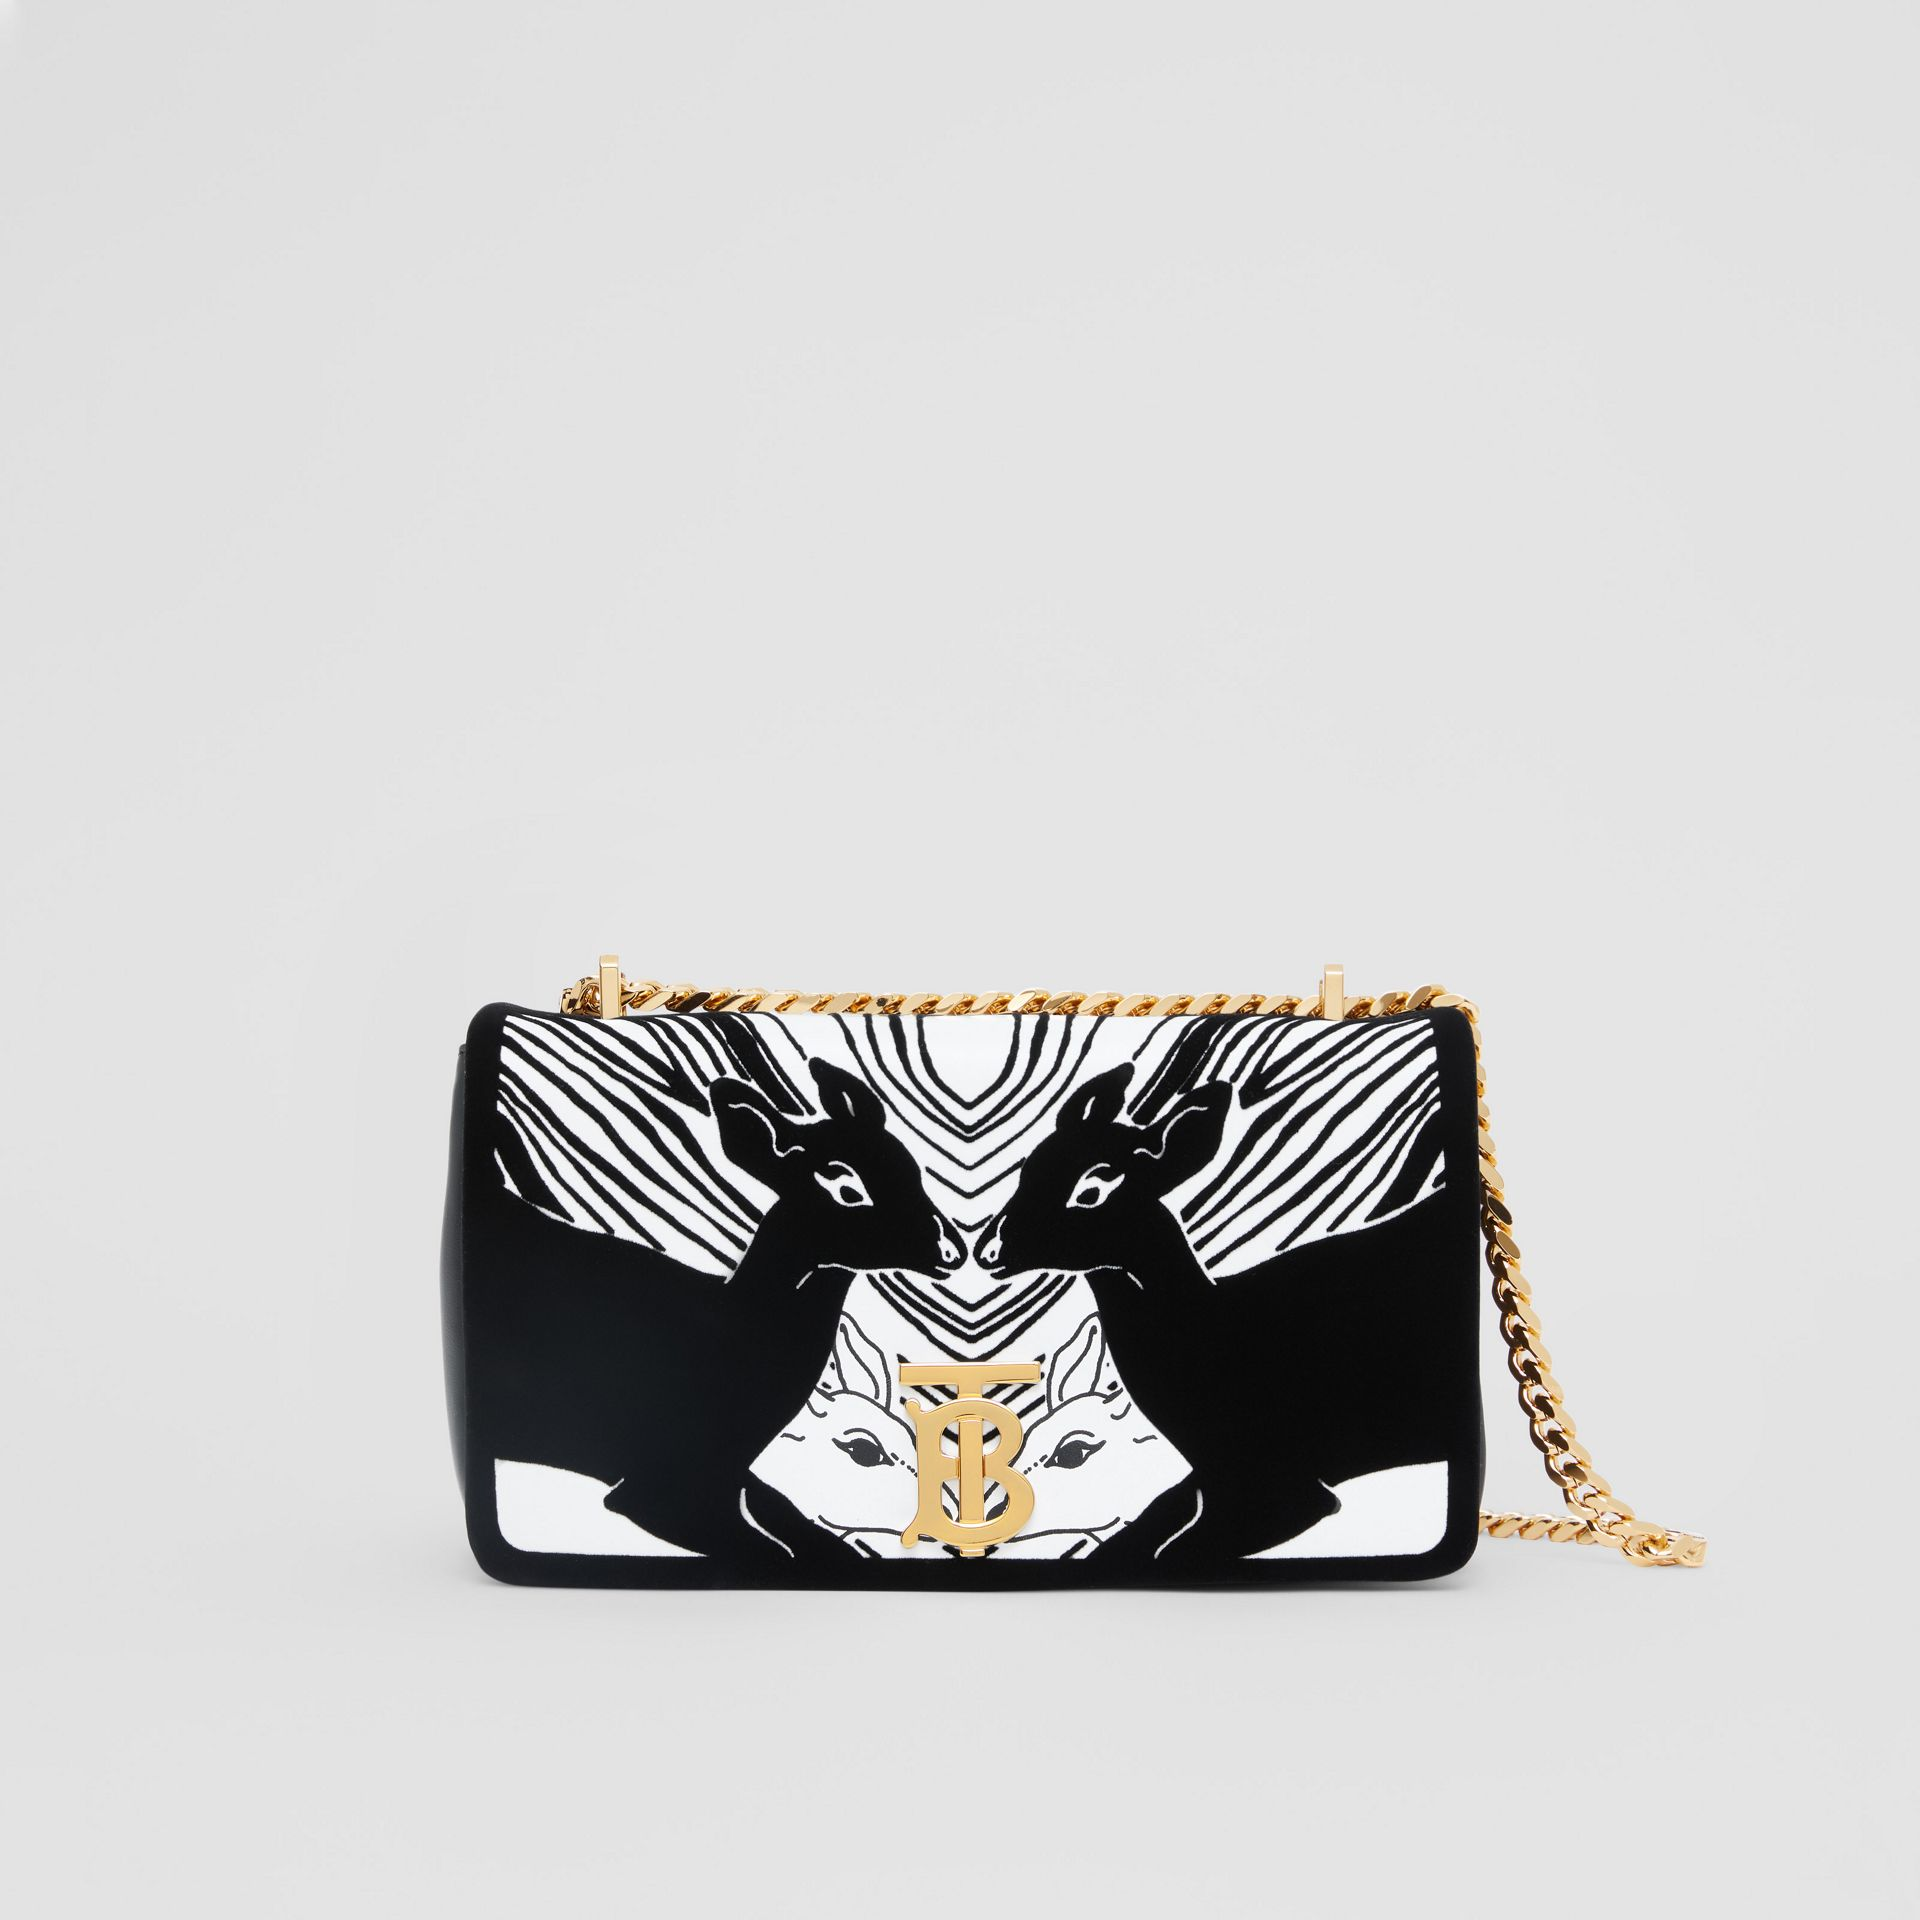 Small Deer Flock Leather Lola Bag in Black/white - Women | Burberry - gallery image 0